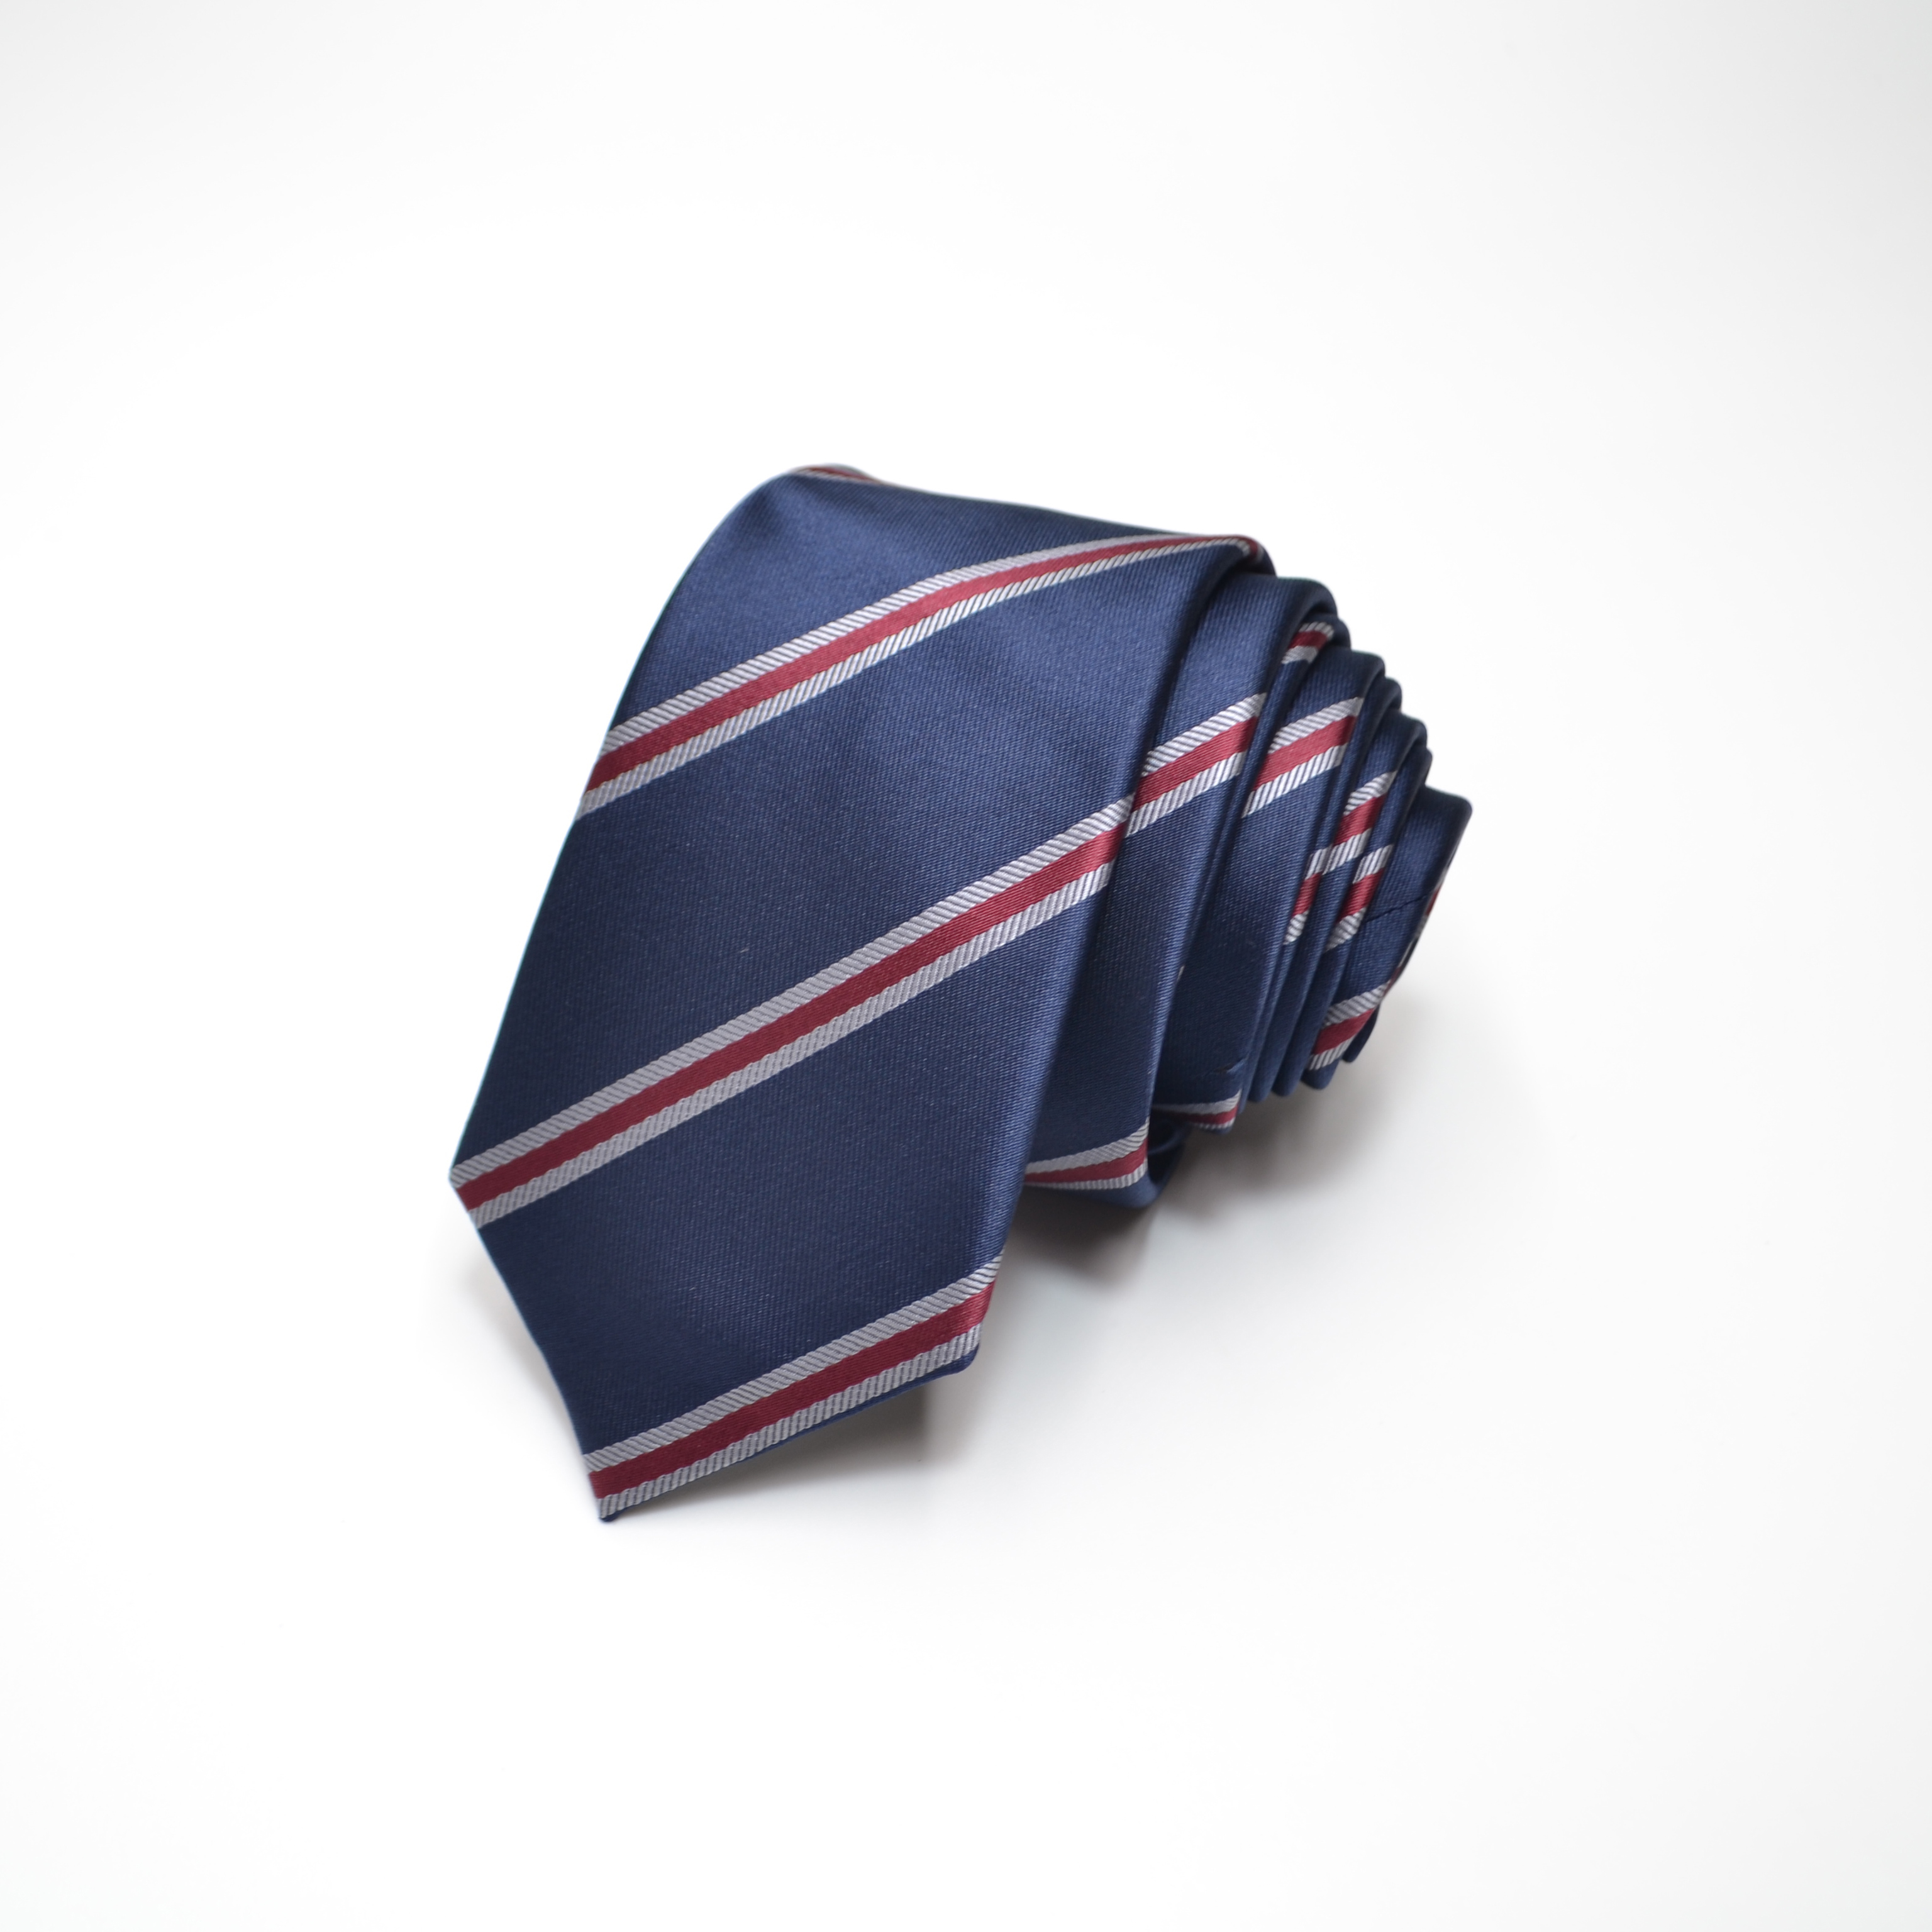 Hot Selling Zip Neck Mens <strong>Tie</strong> With High Quality